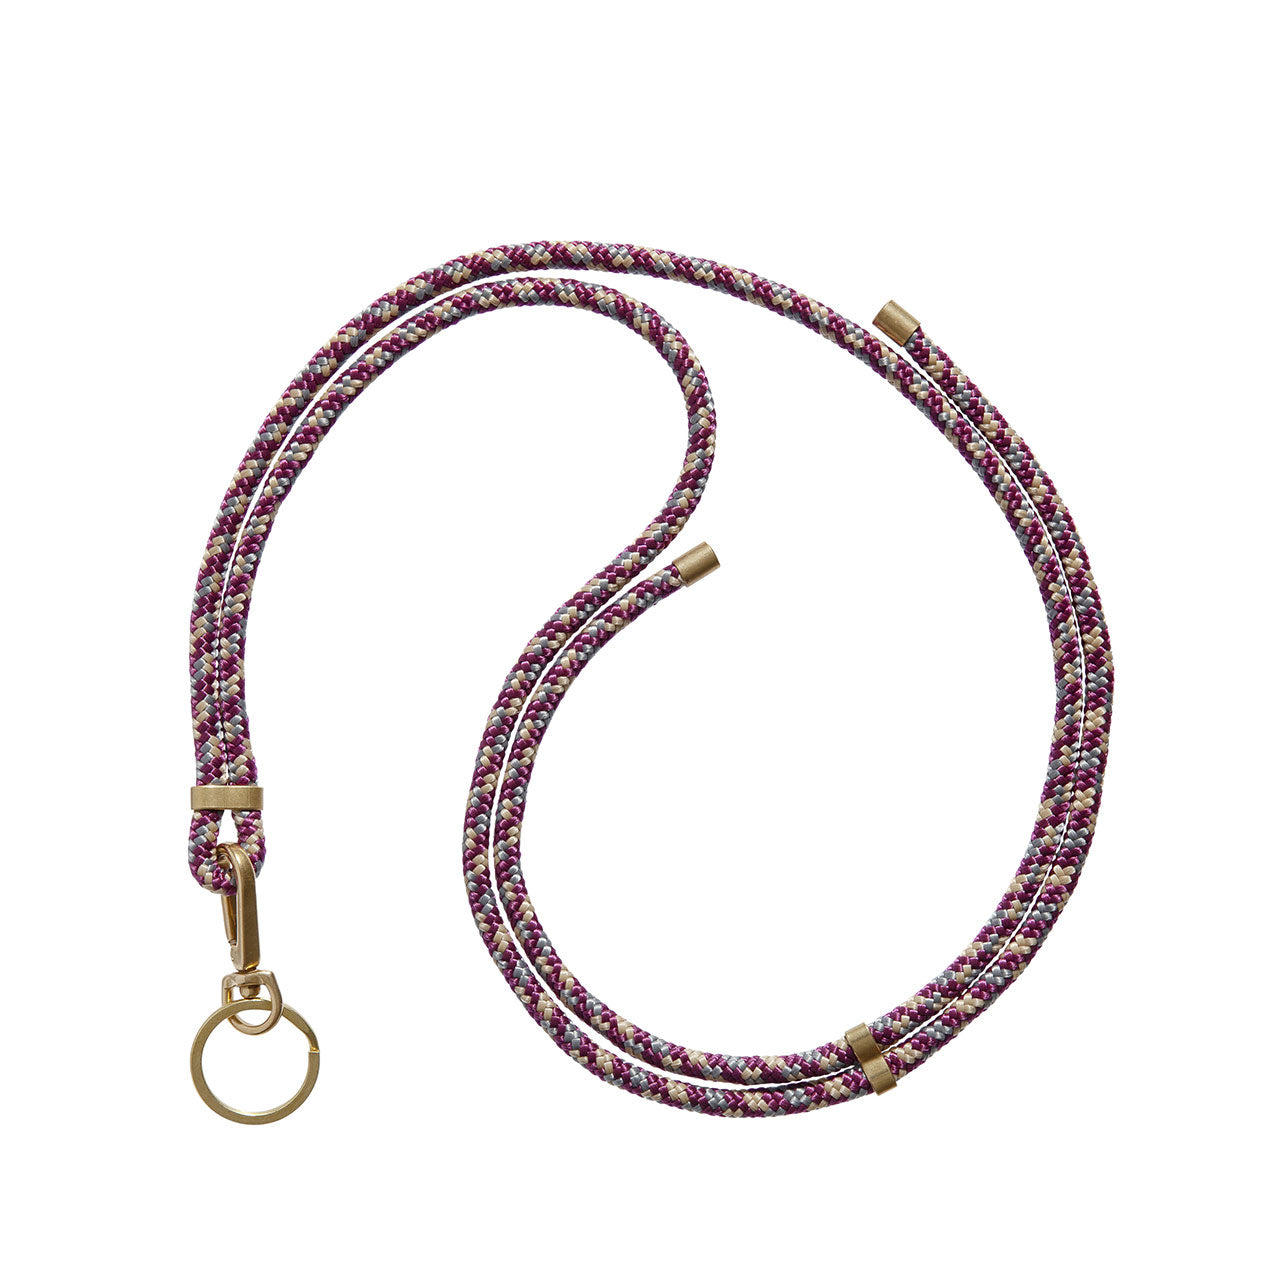 KNOK Key Holder Lanyard in multicoloured Bordeaux